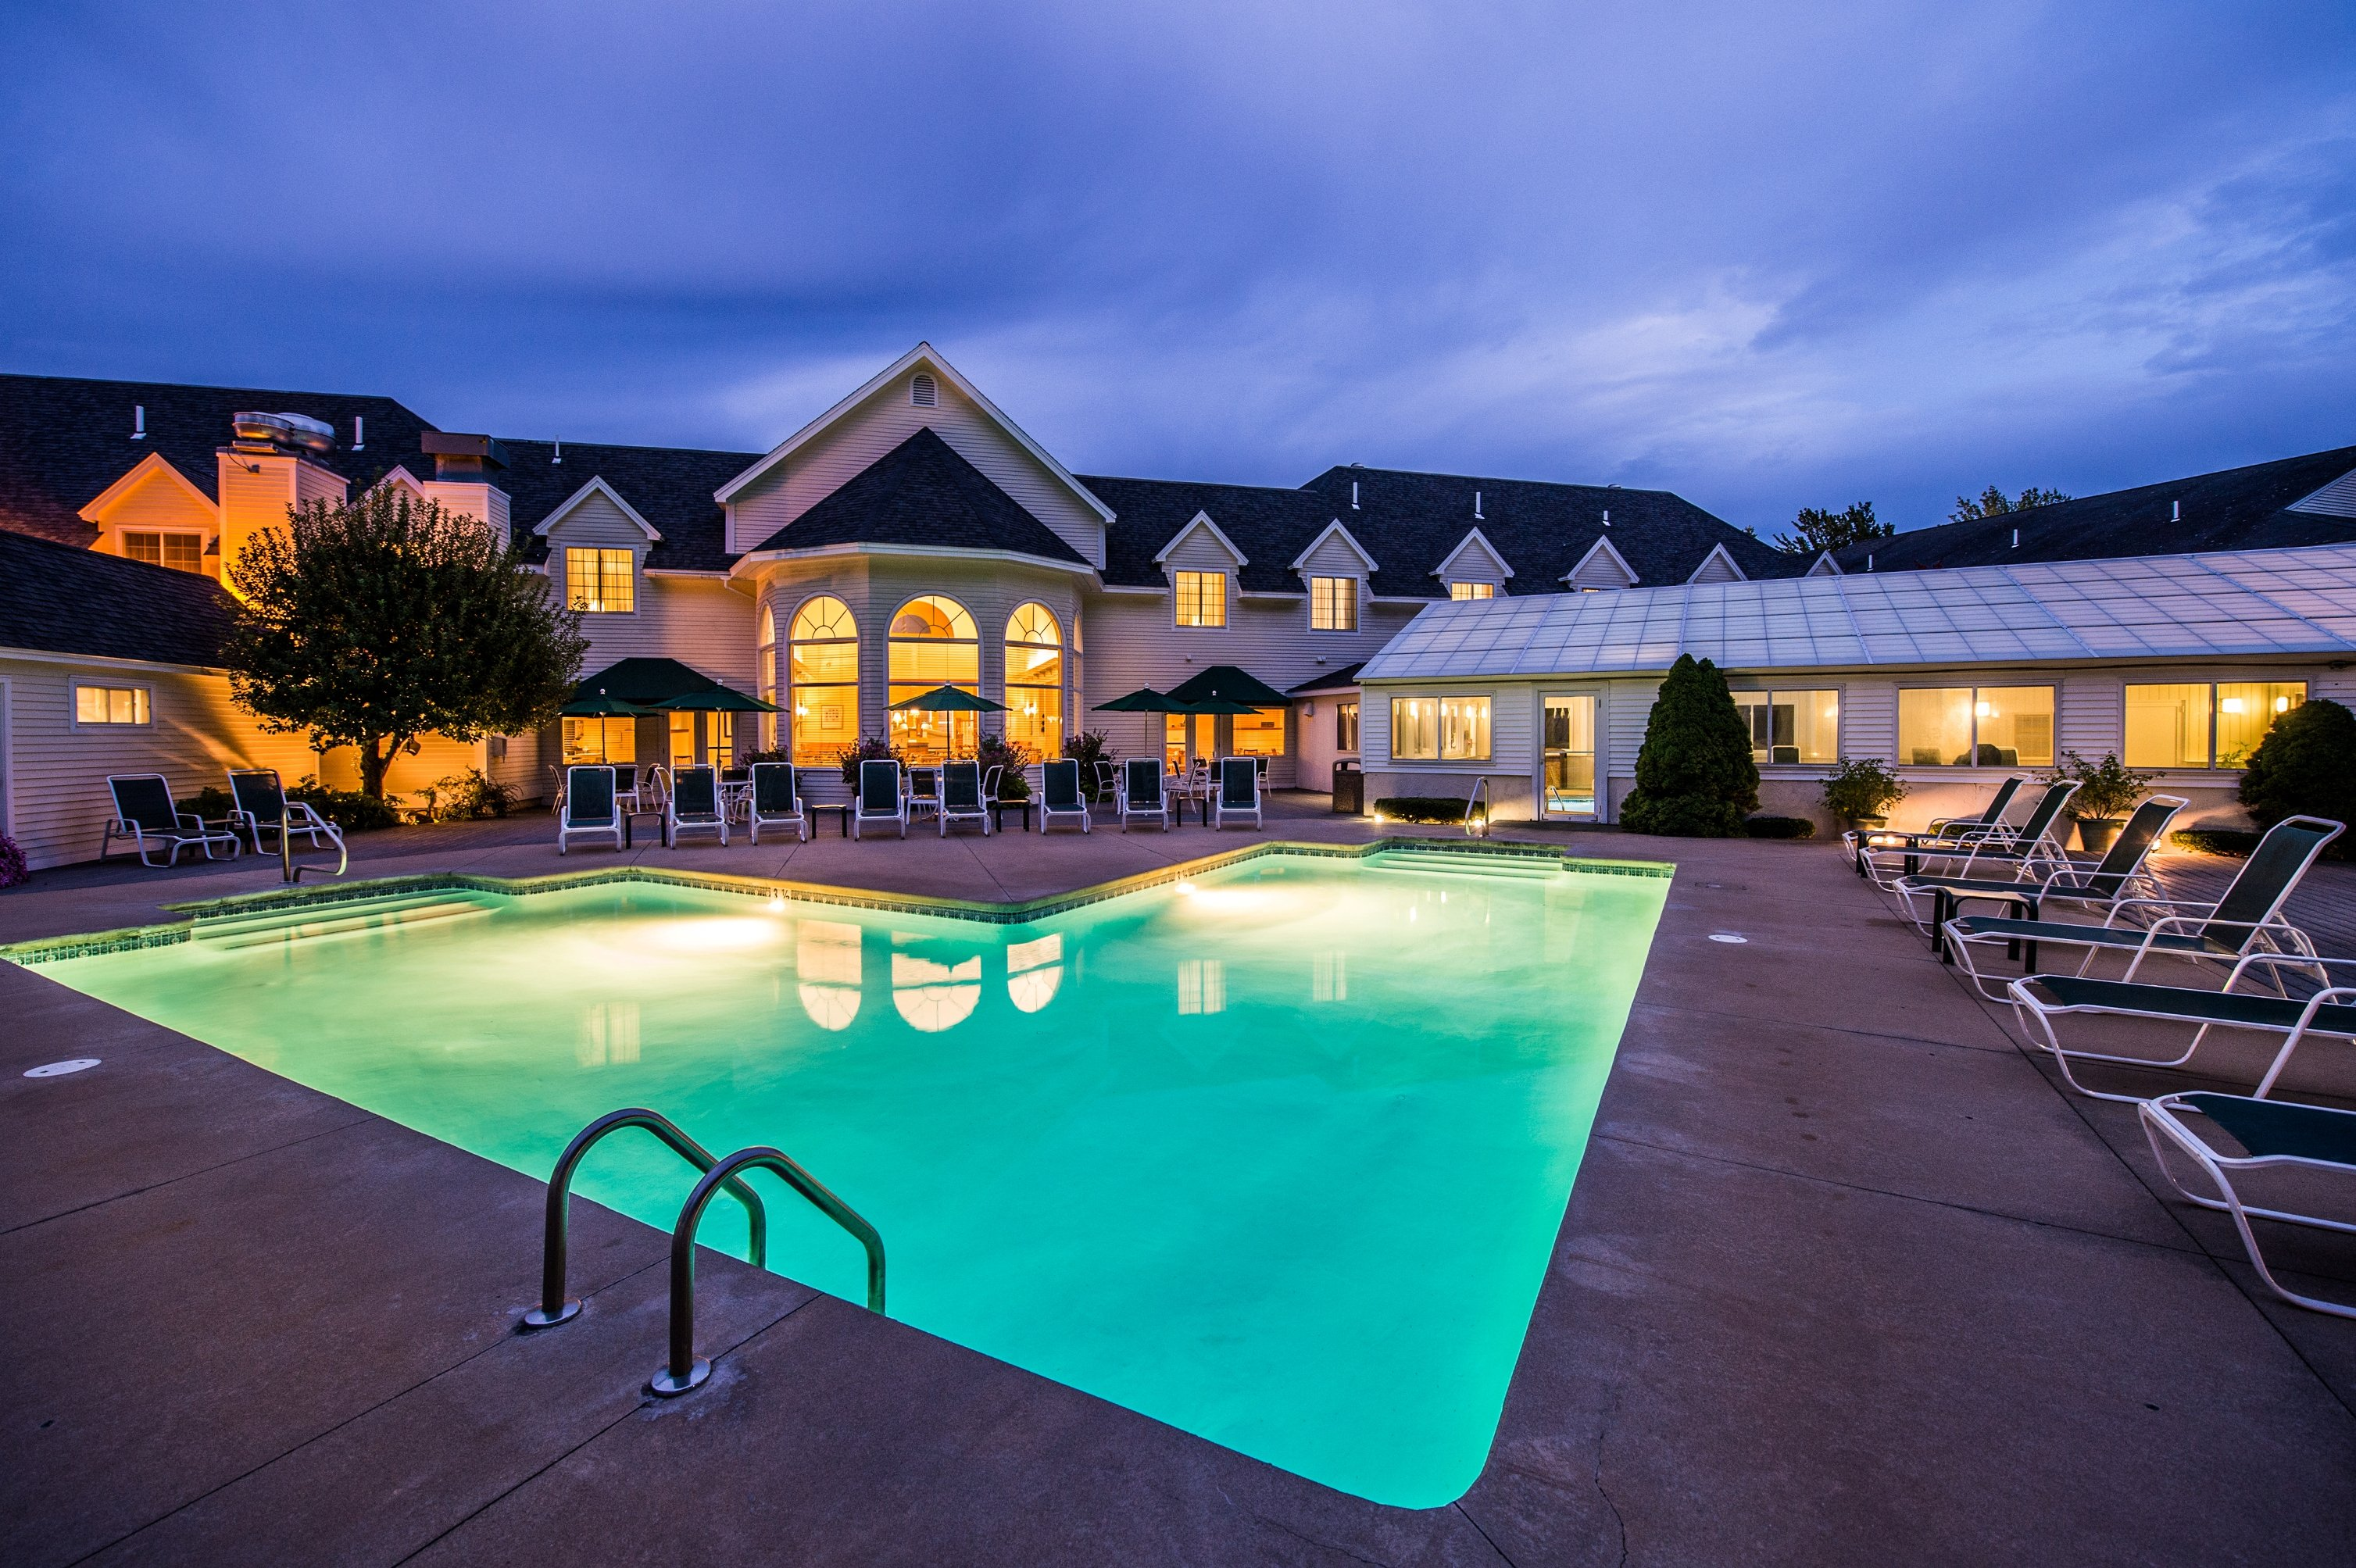 Enjoy a Dip in our Outdoor Pool